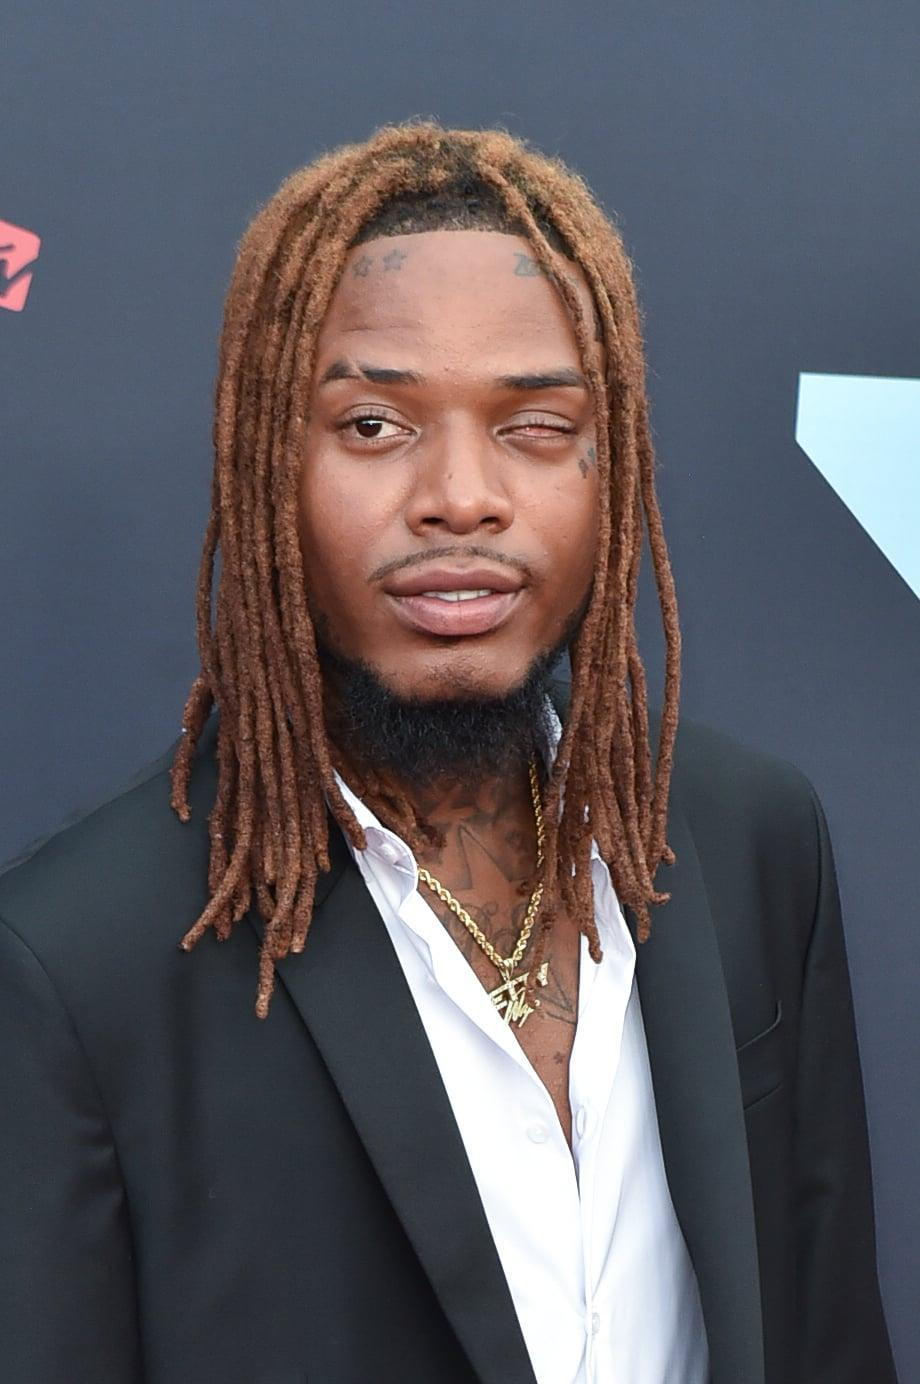 NEWARK, NEW JERSEY - AUGUST 26: Rapper Fetty Wap attends the 2019 MTV Video Music Awards red carpet at Prudential Center on August 26, 2019 in Newark, New Jersey. (Photo by Aaron J. Thornton/Getty Images)